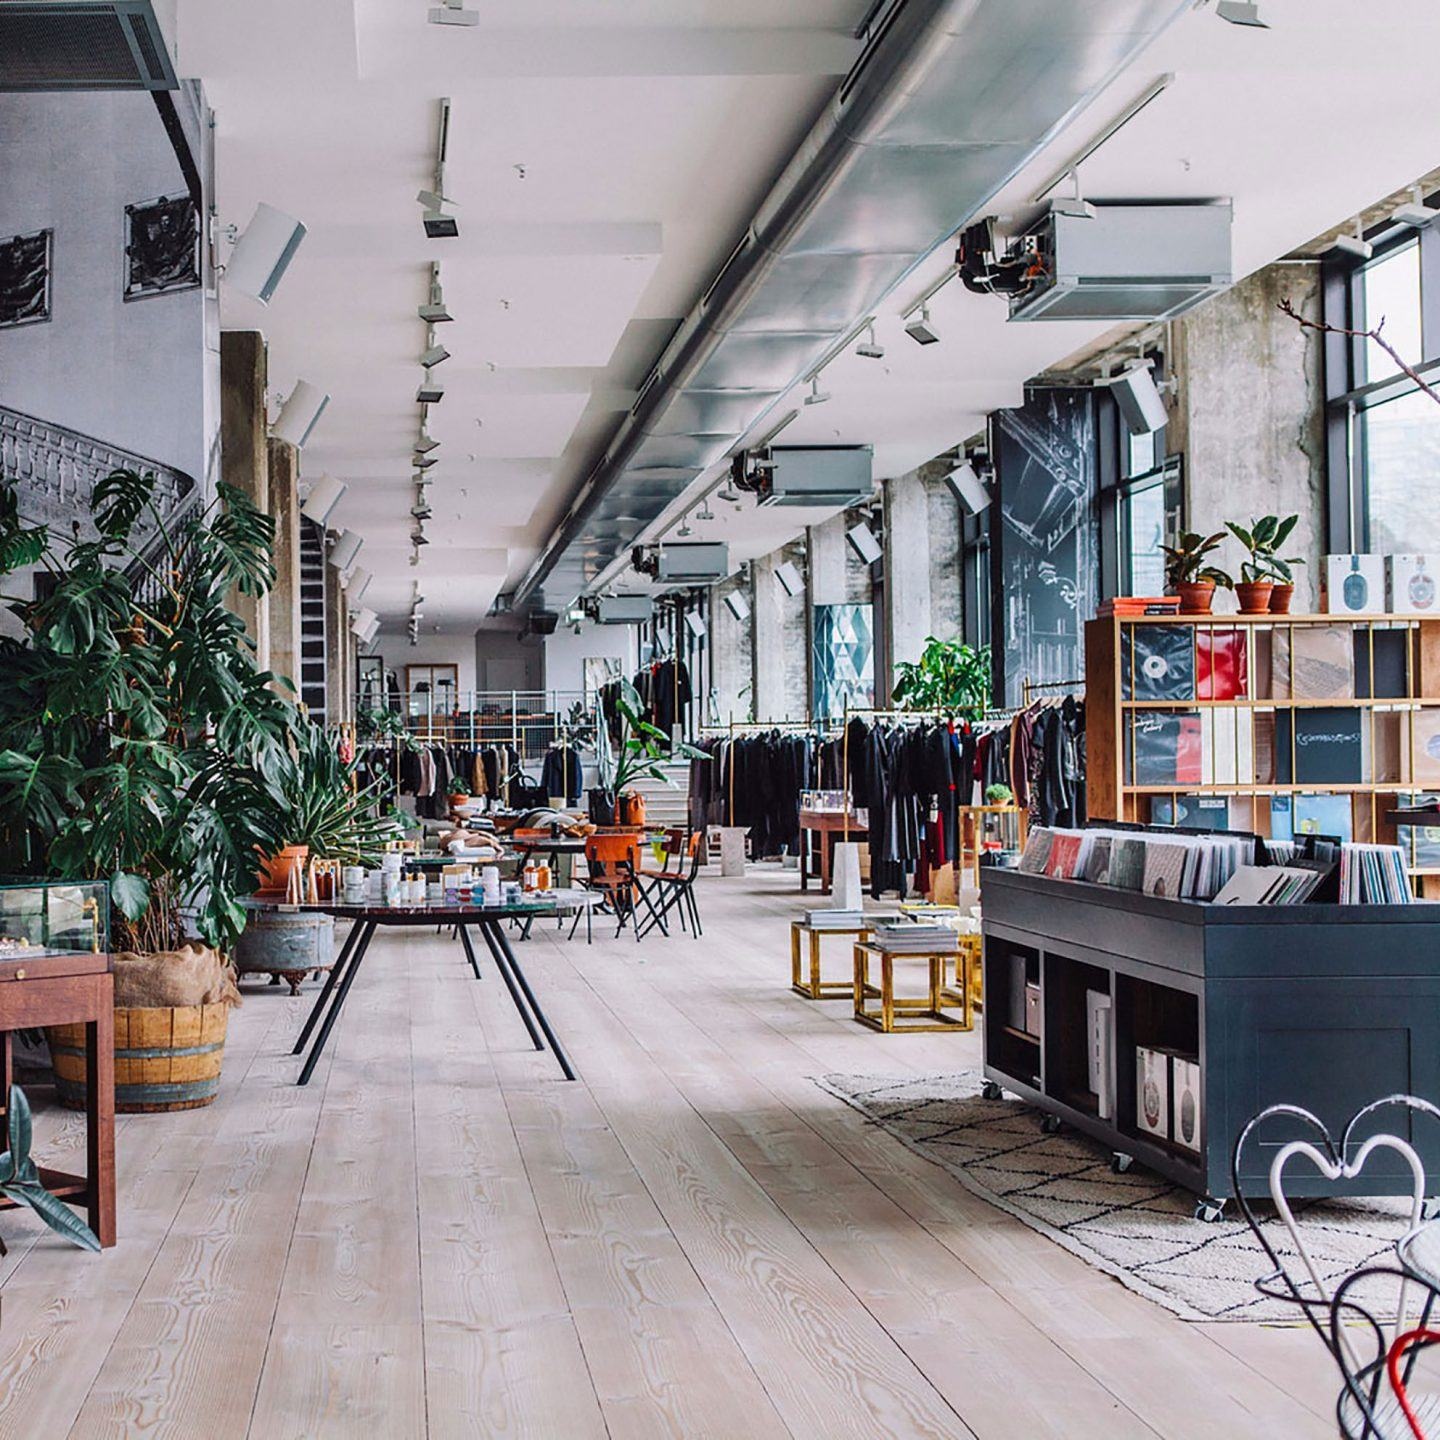 IGNANT-Travel-The-Store-Berlin-4